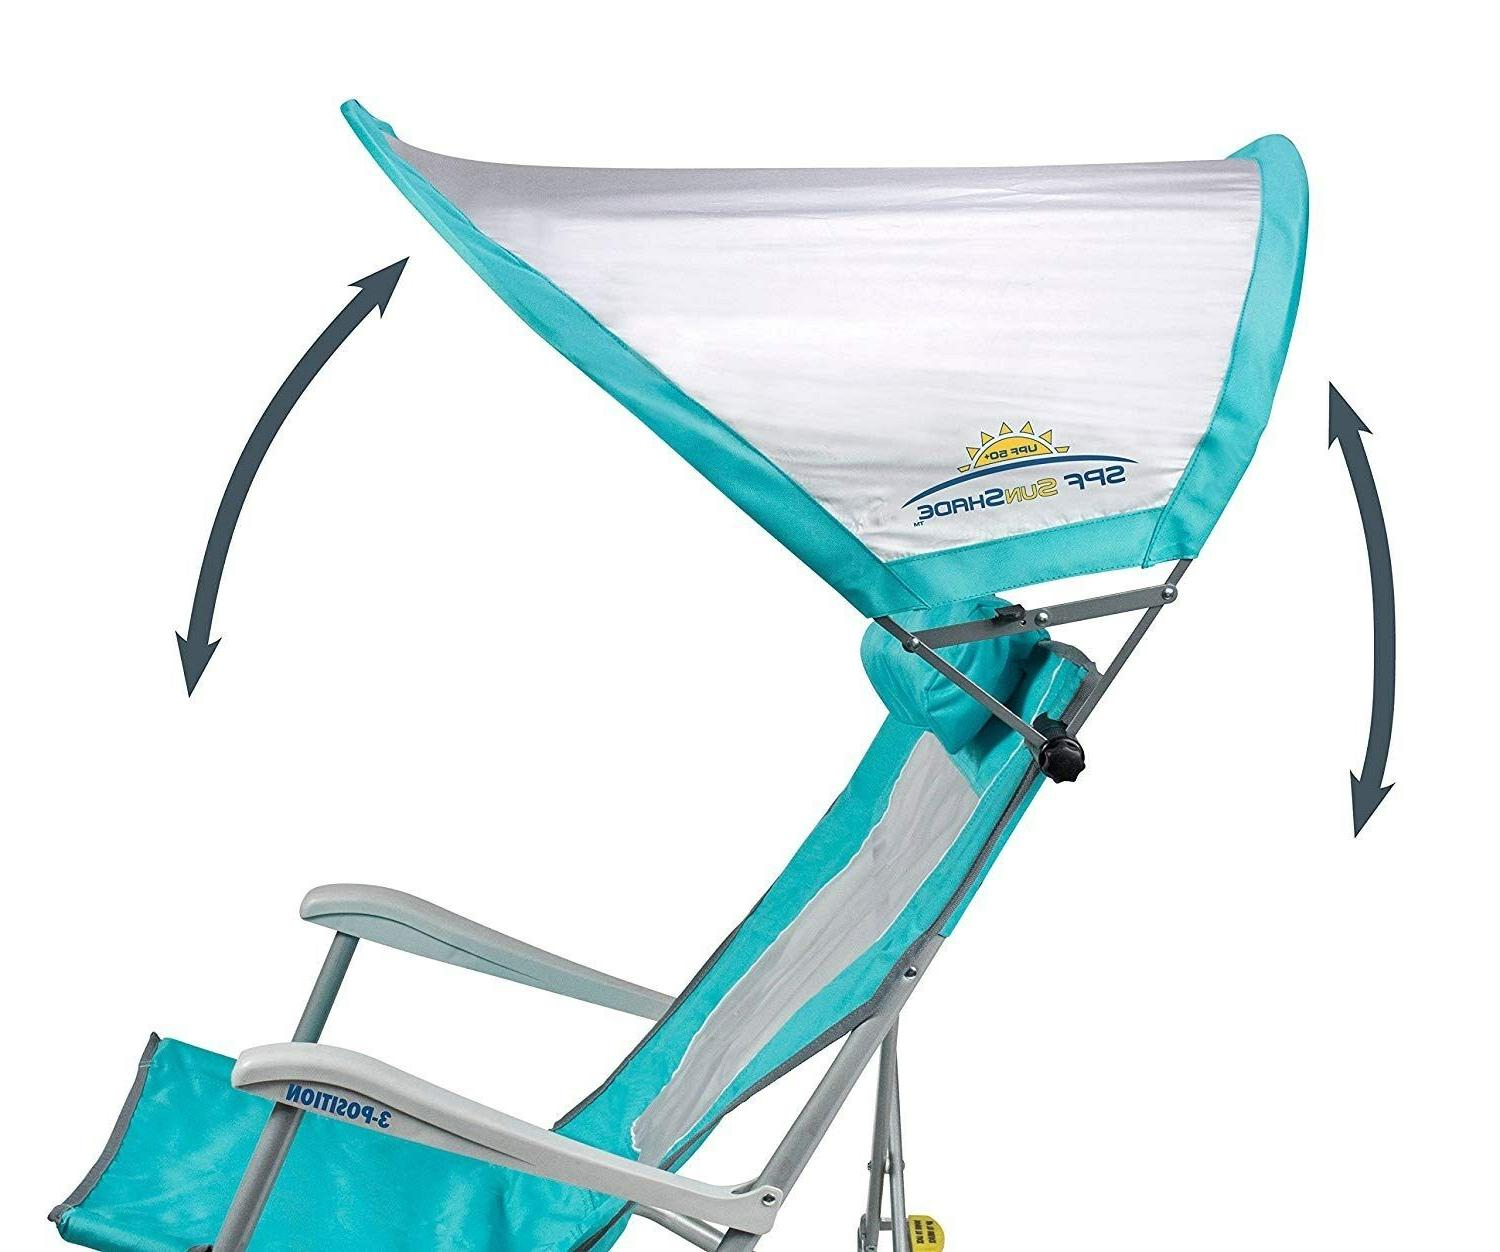 Waterside Sun Shade Folding Beach Chair with Adjustable